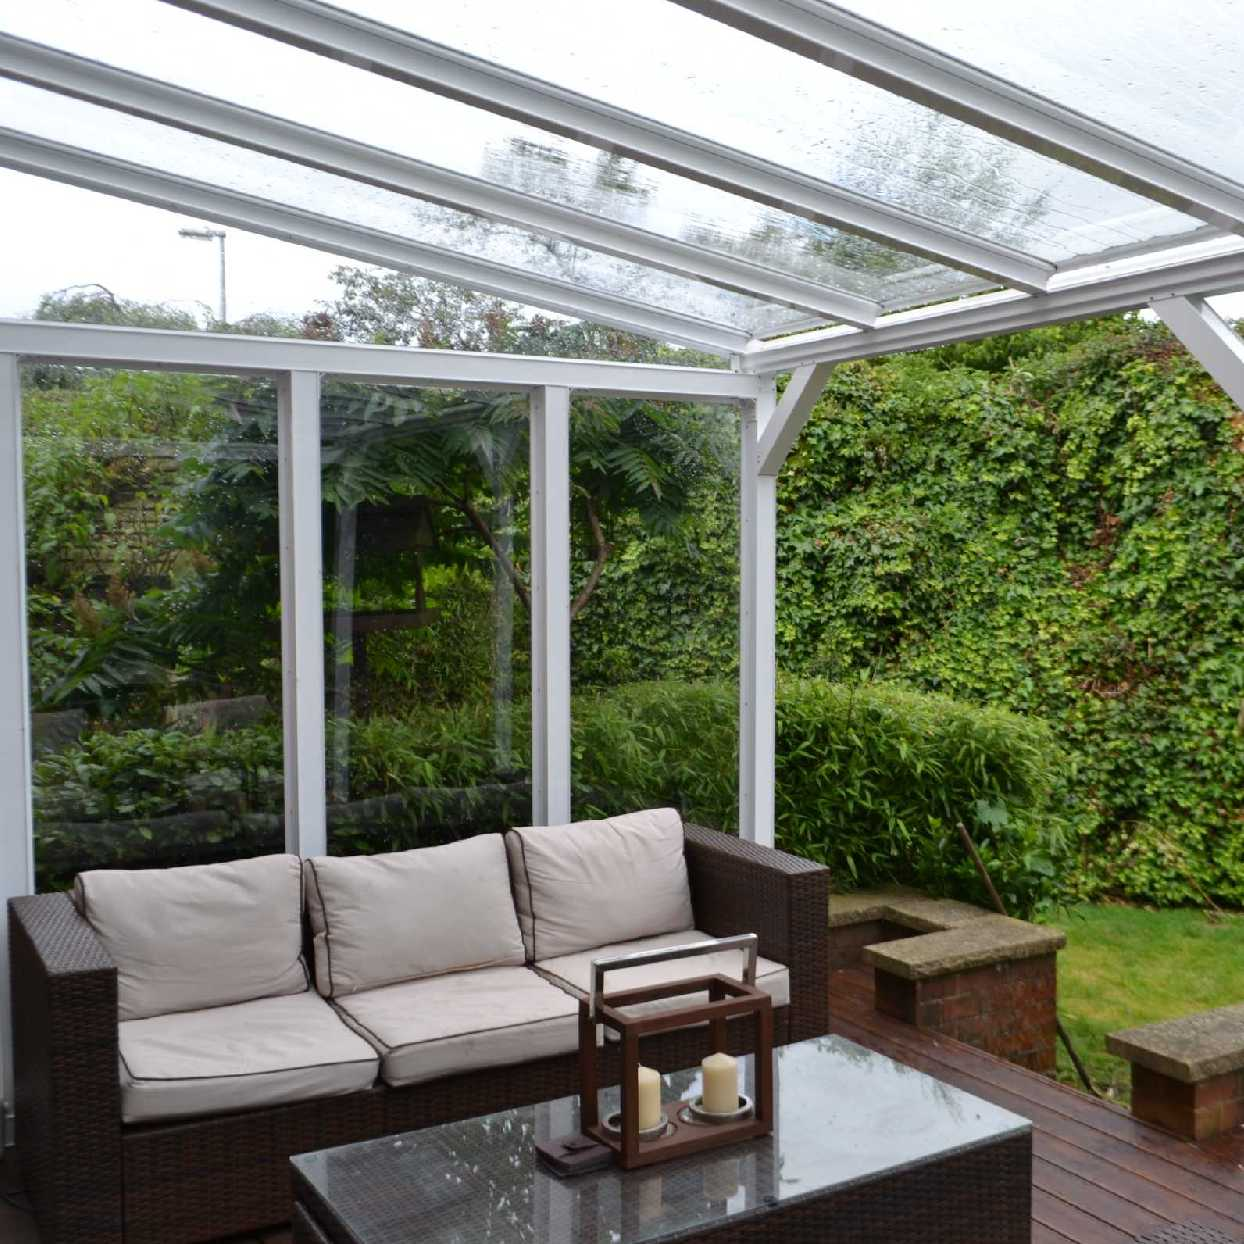 Great selection of Omega Smart Lean-To Canopy with 16mm Polycarbonate Glazing - 9.5m (W) x 2.5m (P), (5) Supporting Posts